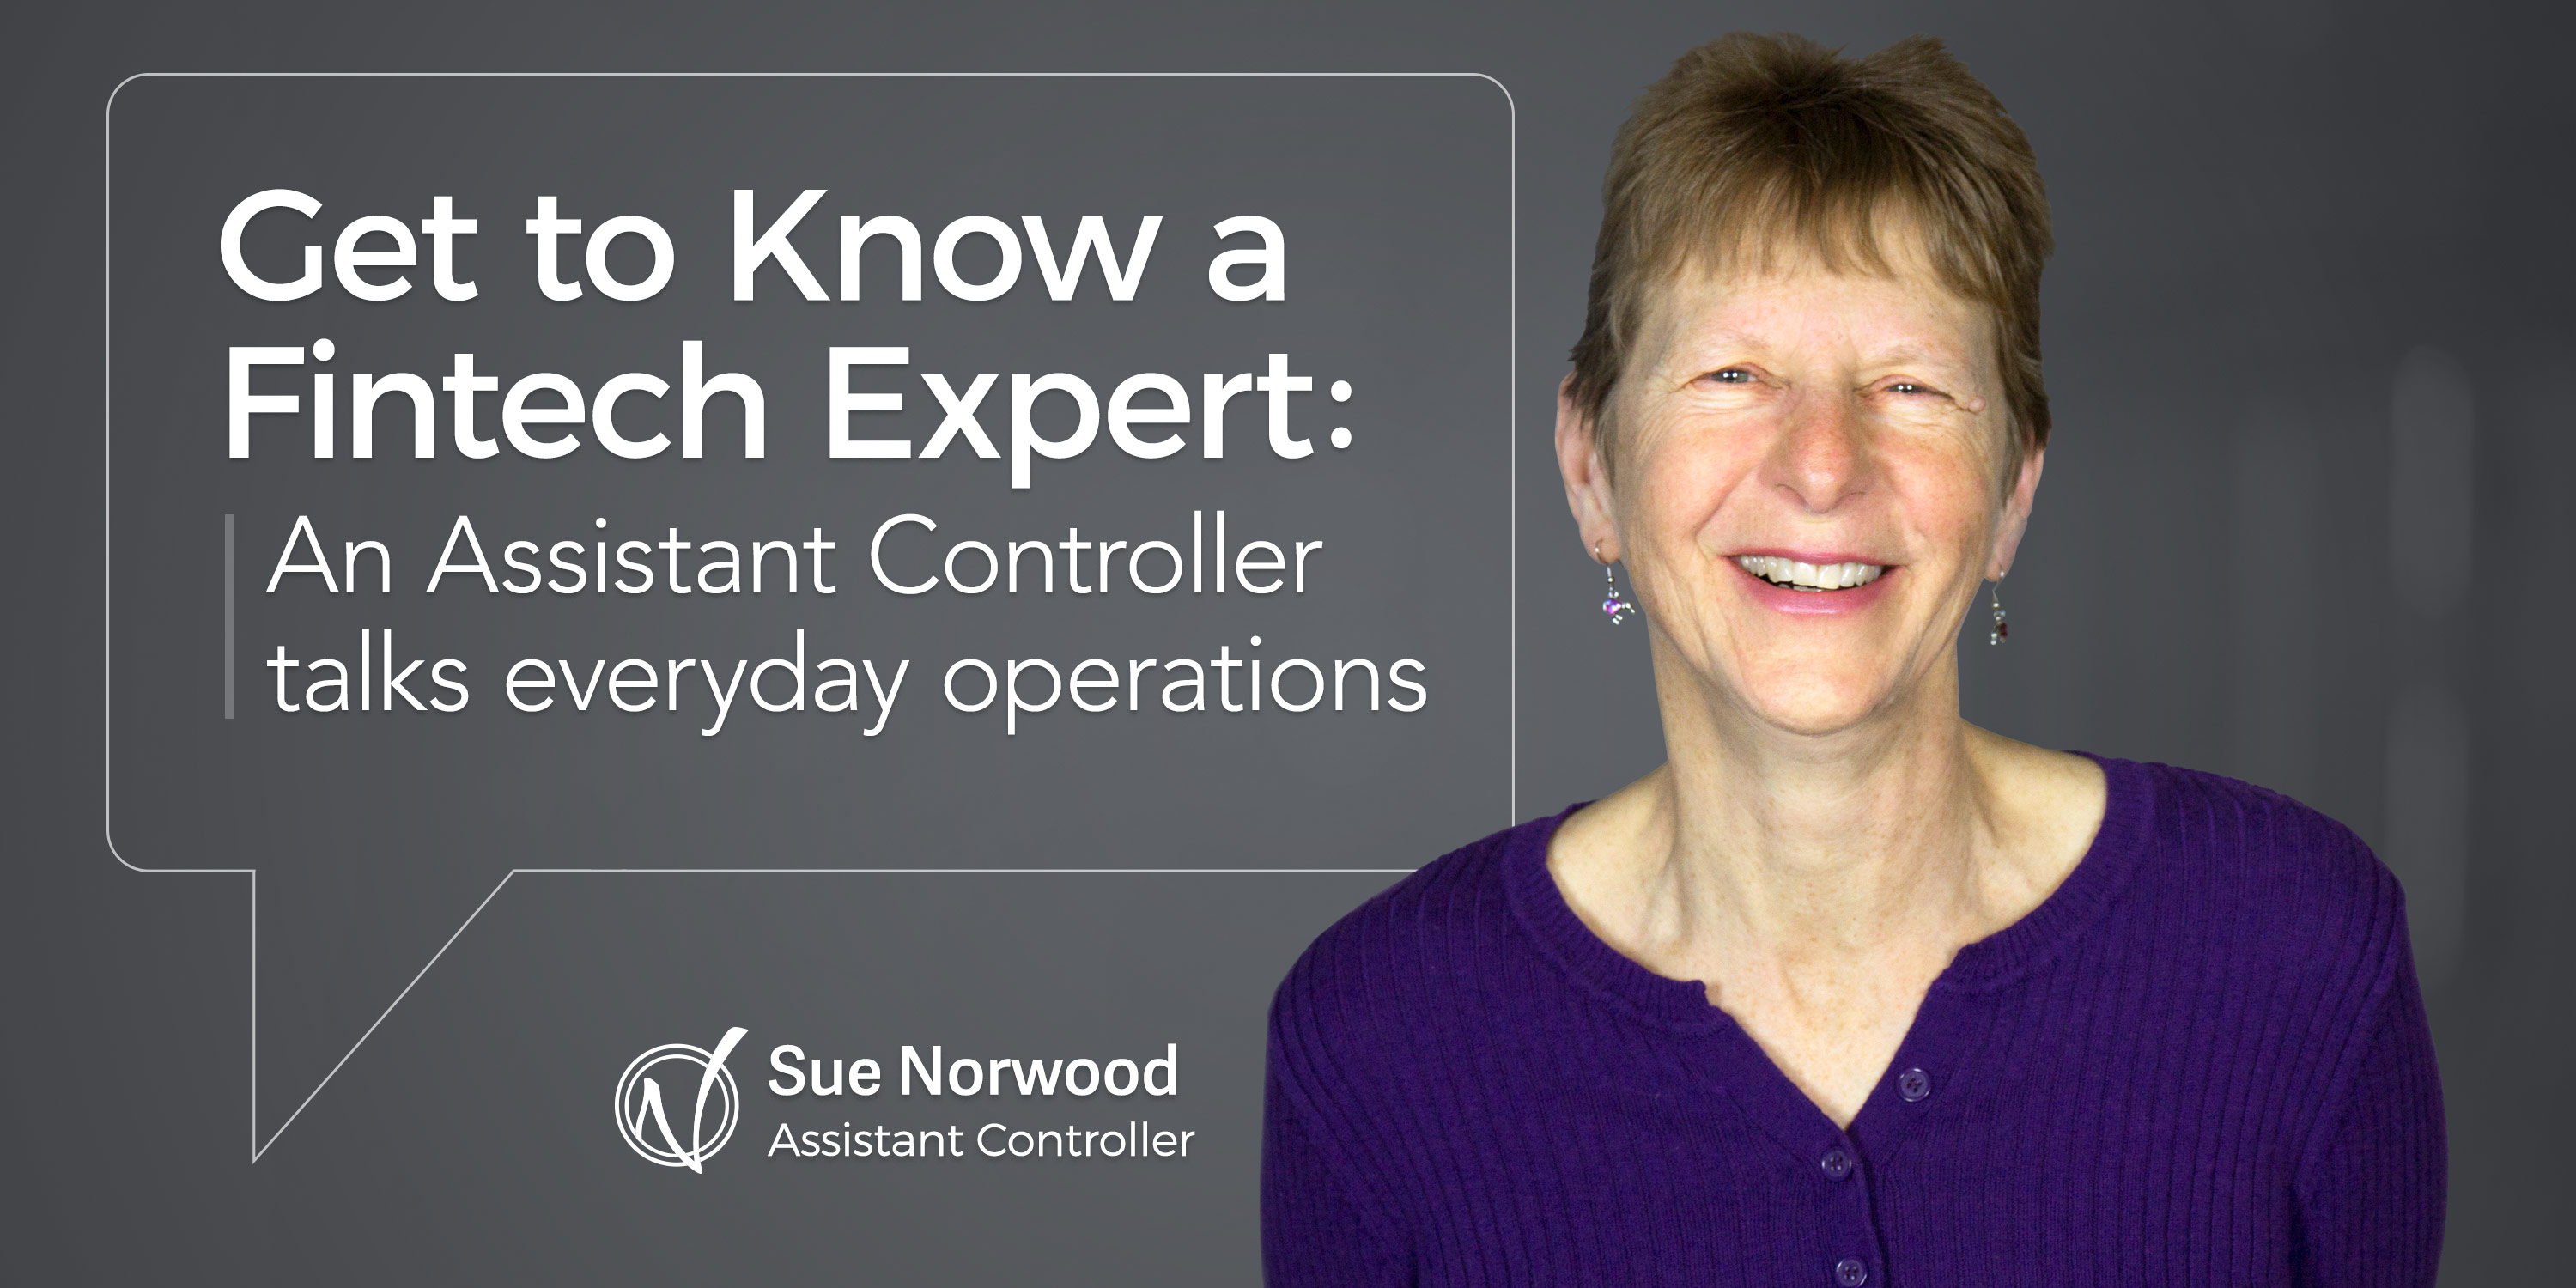 Sue Norwood, assistant controller at Nvoicepay